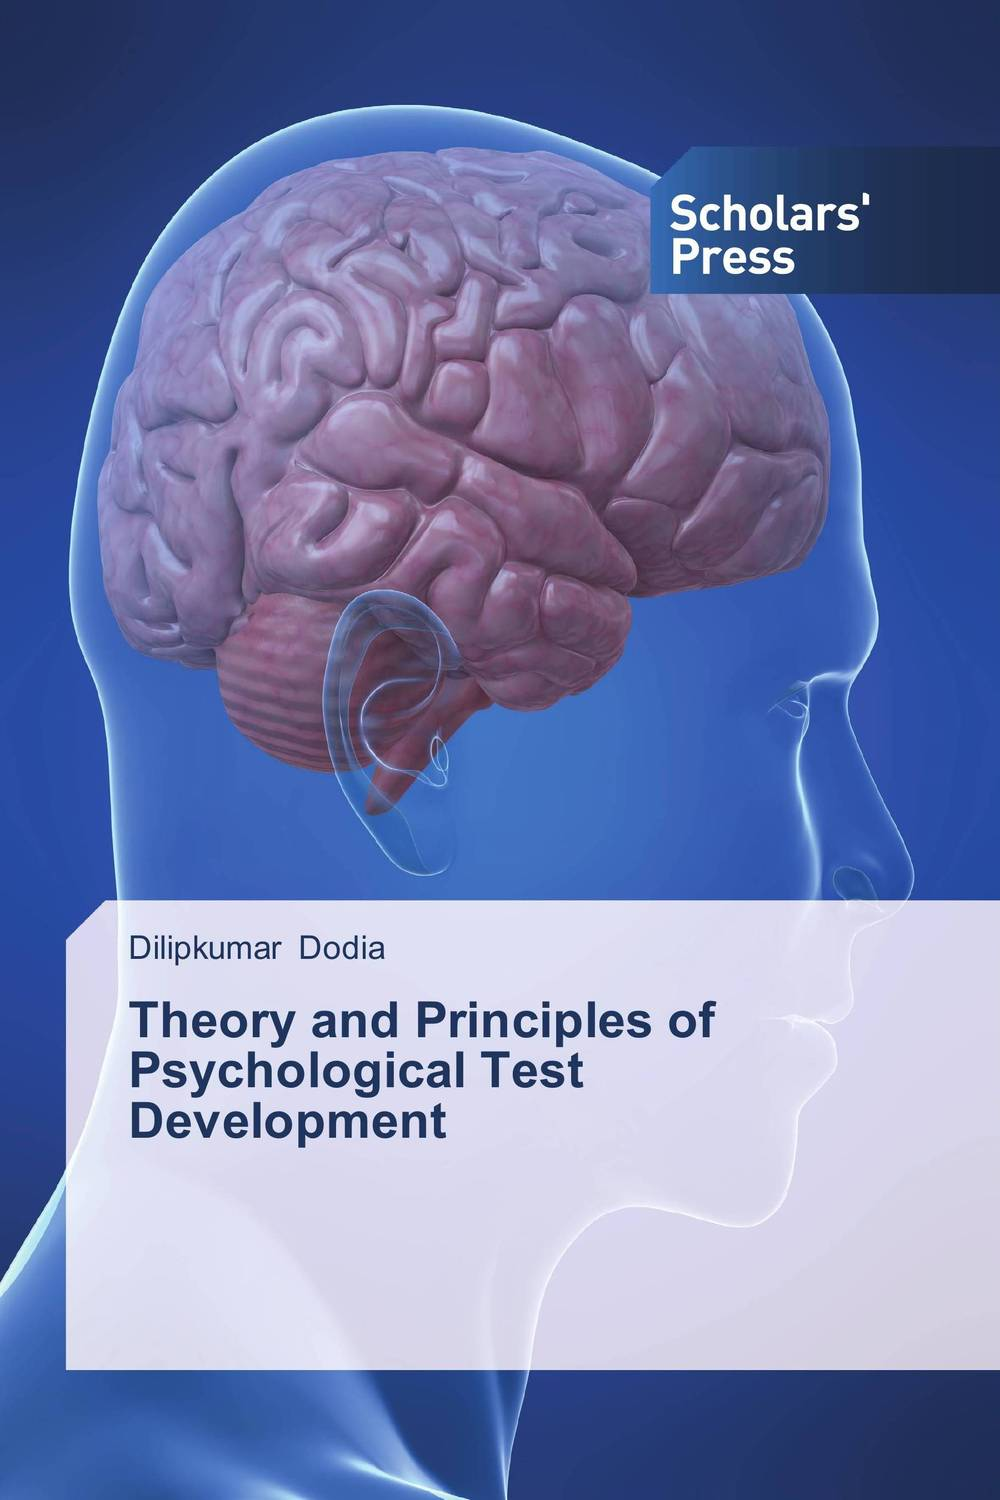 Theory and Principles of Psychological Test Development theory and principles of psychological test development